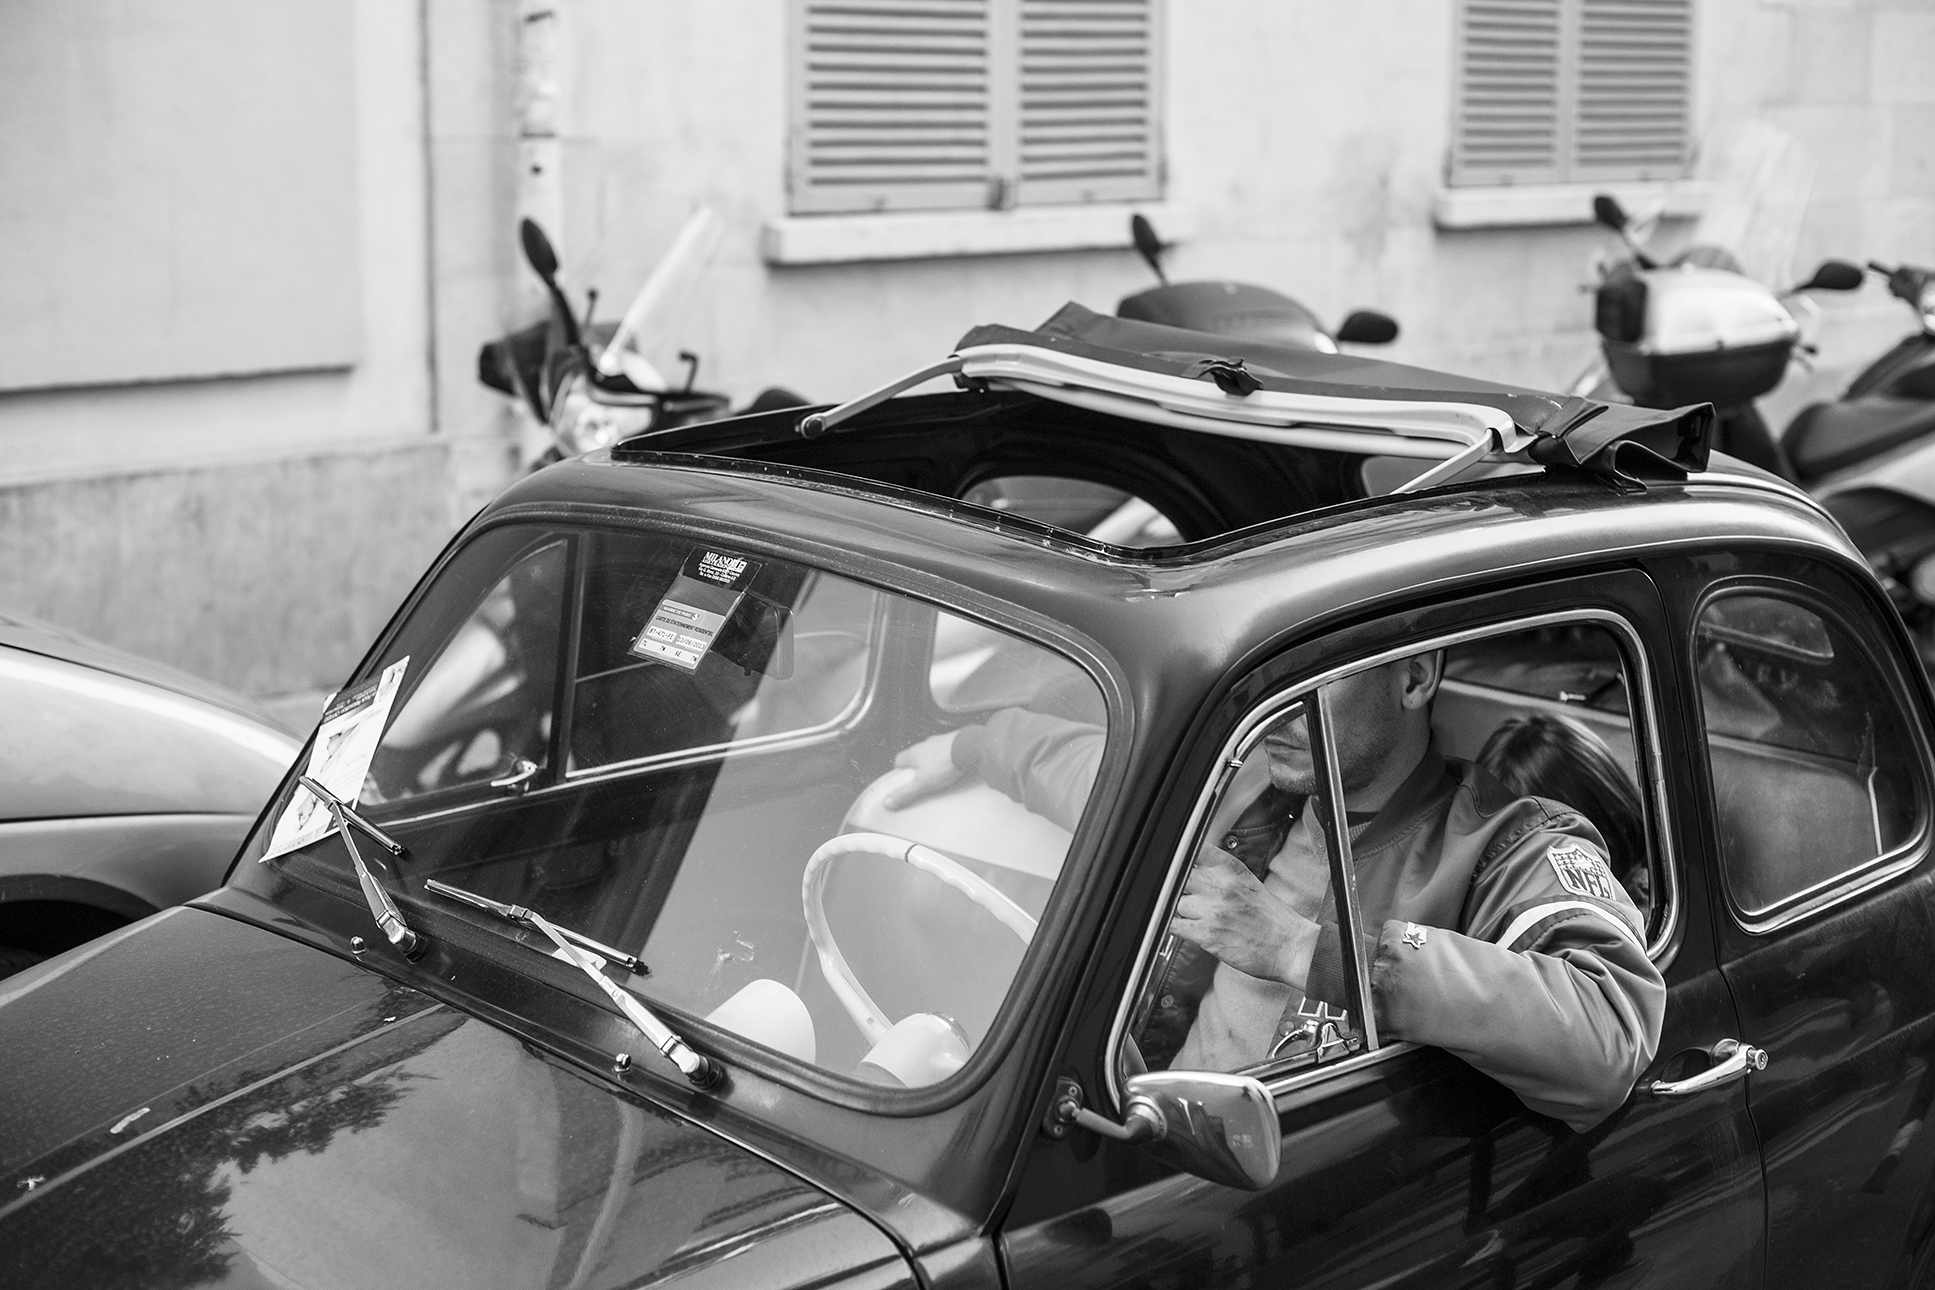 Fiat-500-Paris-septembre-2012.jpg